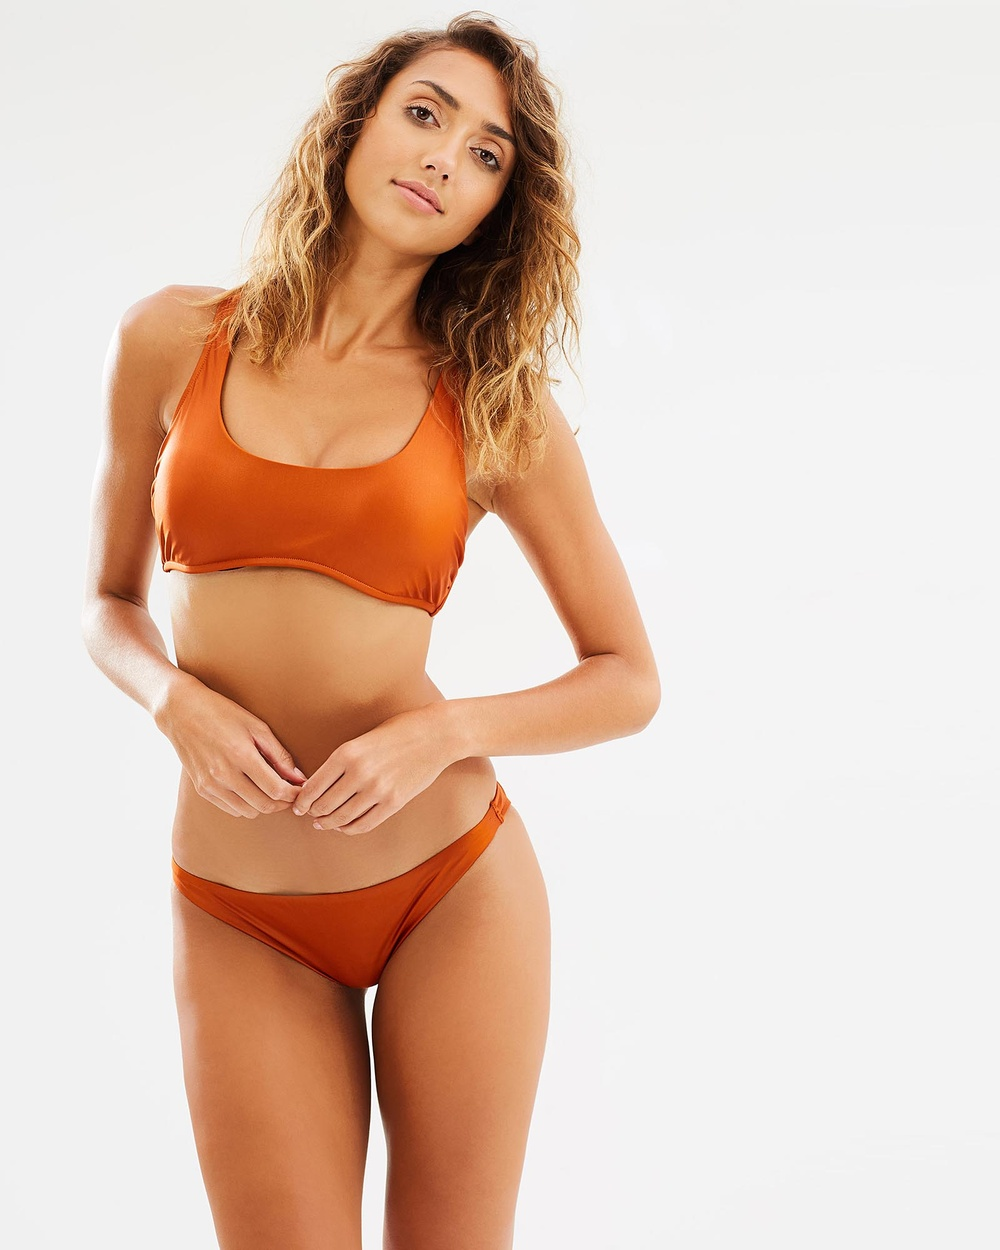 Bondi Born Butterfly Effect Rio Bikini Bottoms Bikini Bottoms Orange Butterfly Effect Rio Bikini Bottoms